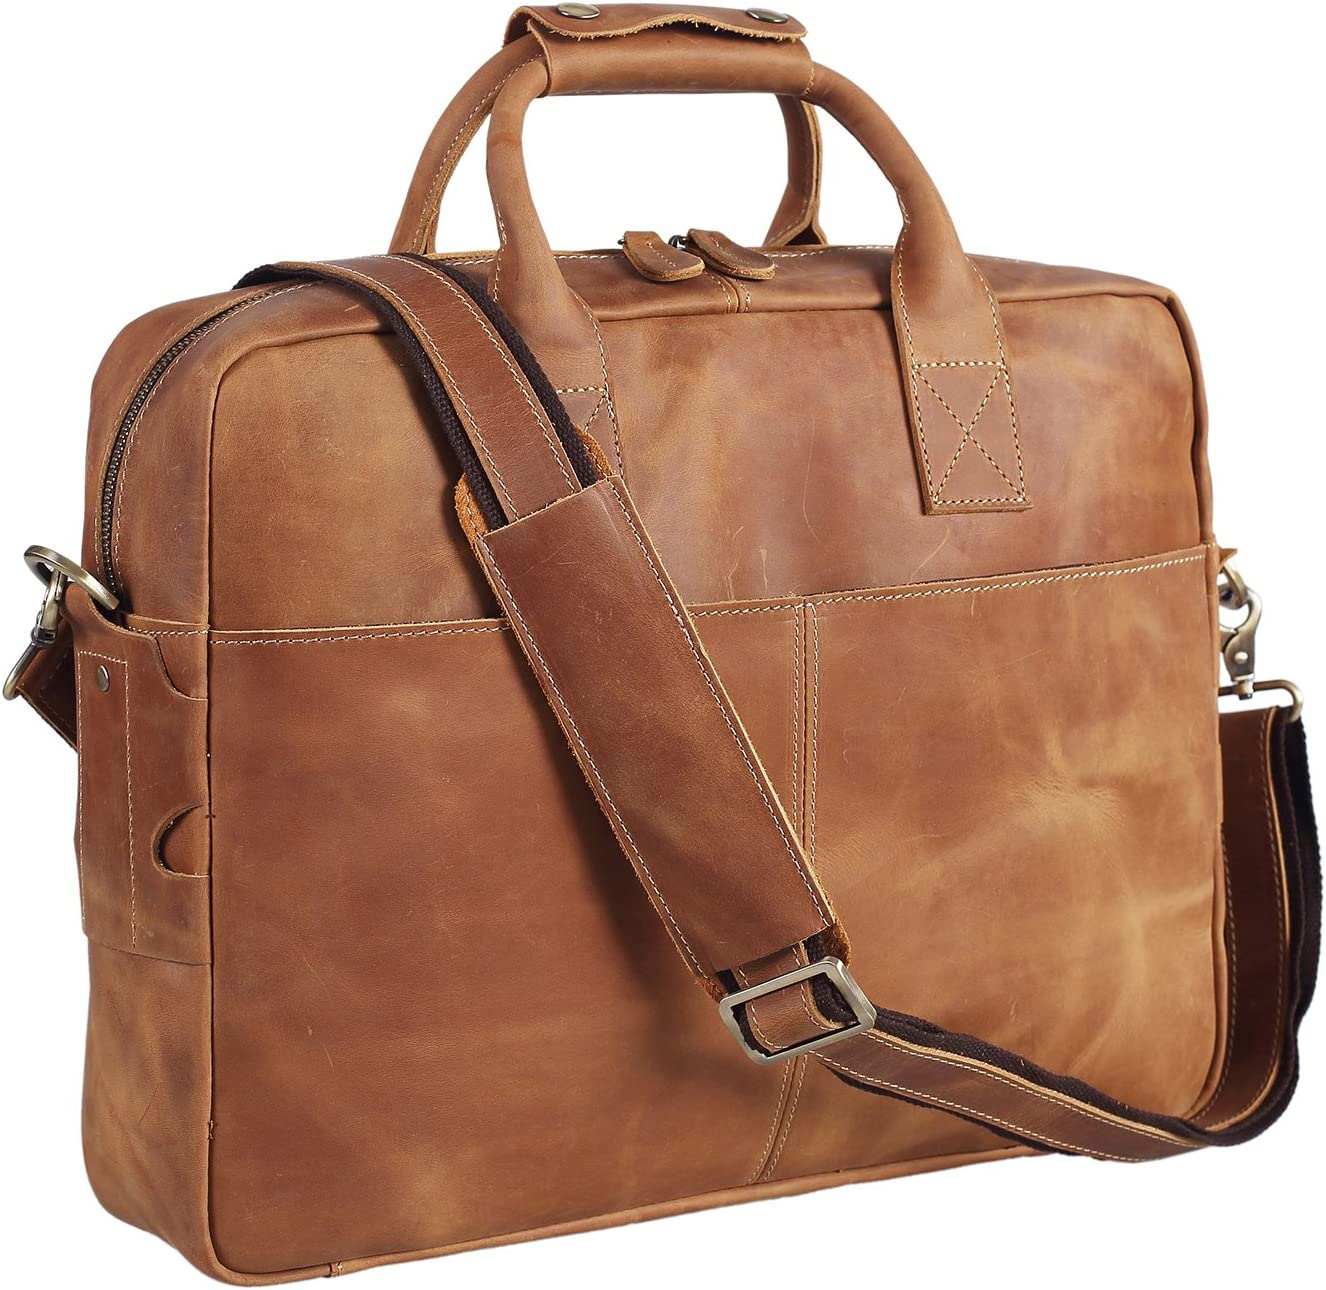 The Texbo Genuine Full Grain Leather Briefcase travel product recommended by Jake Hay on Lifney.